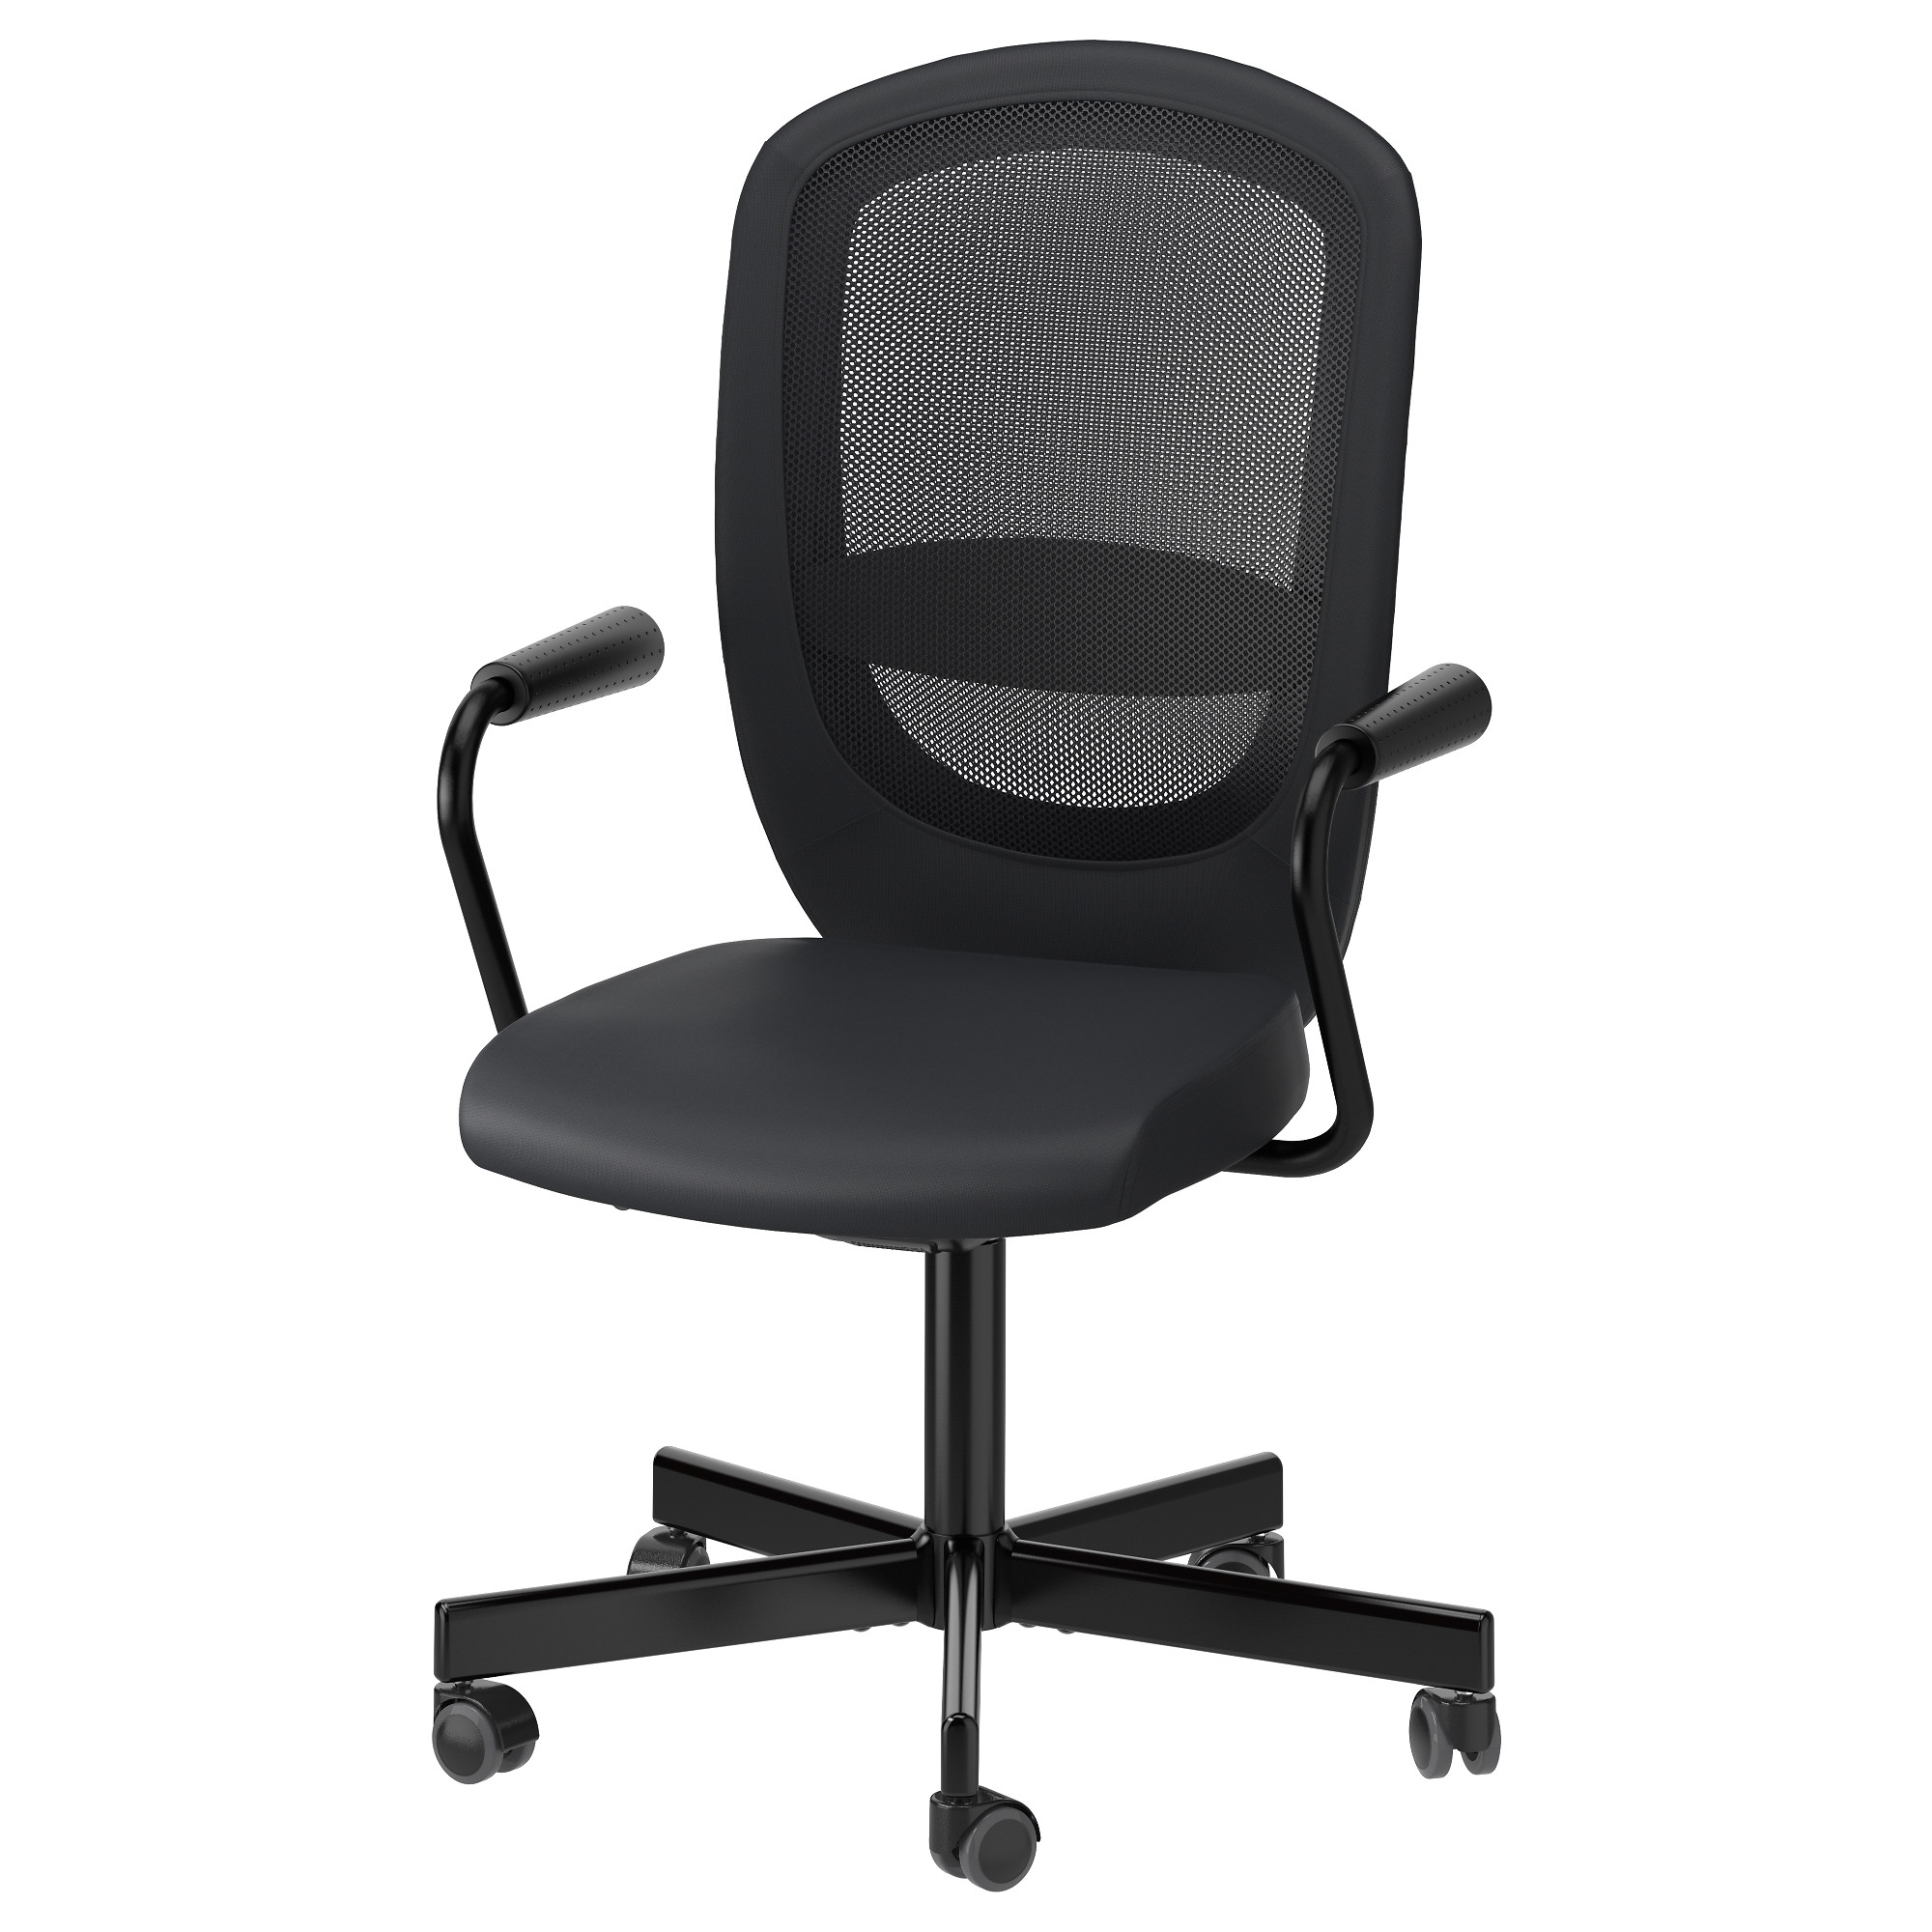 Flintan Nominell Swivel Chair With Armrests Black Tested For 242 Lb 8 Oz